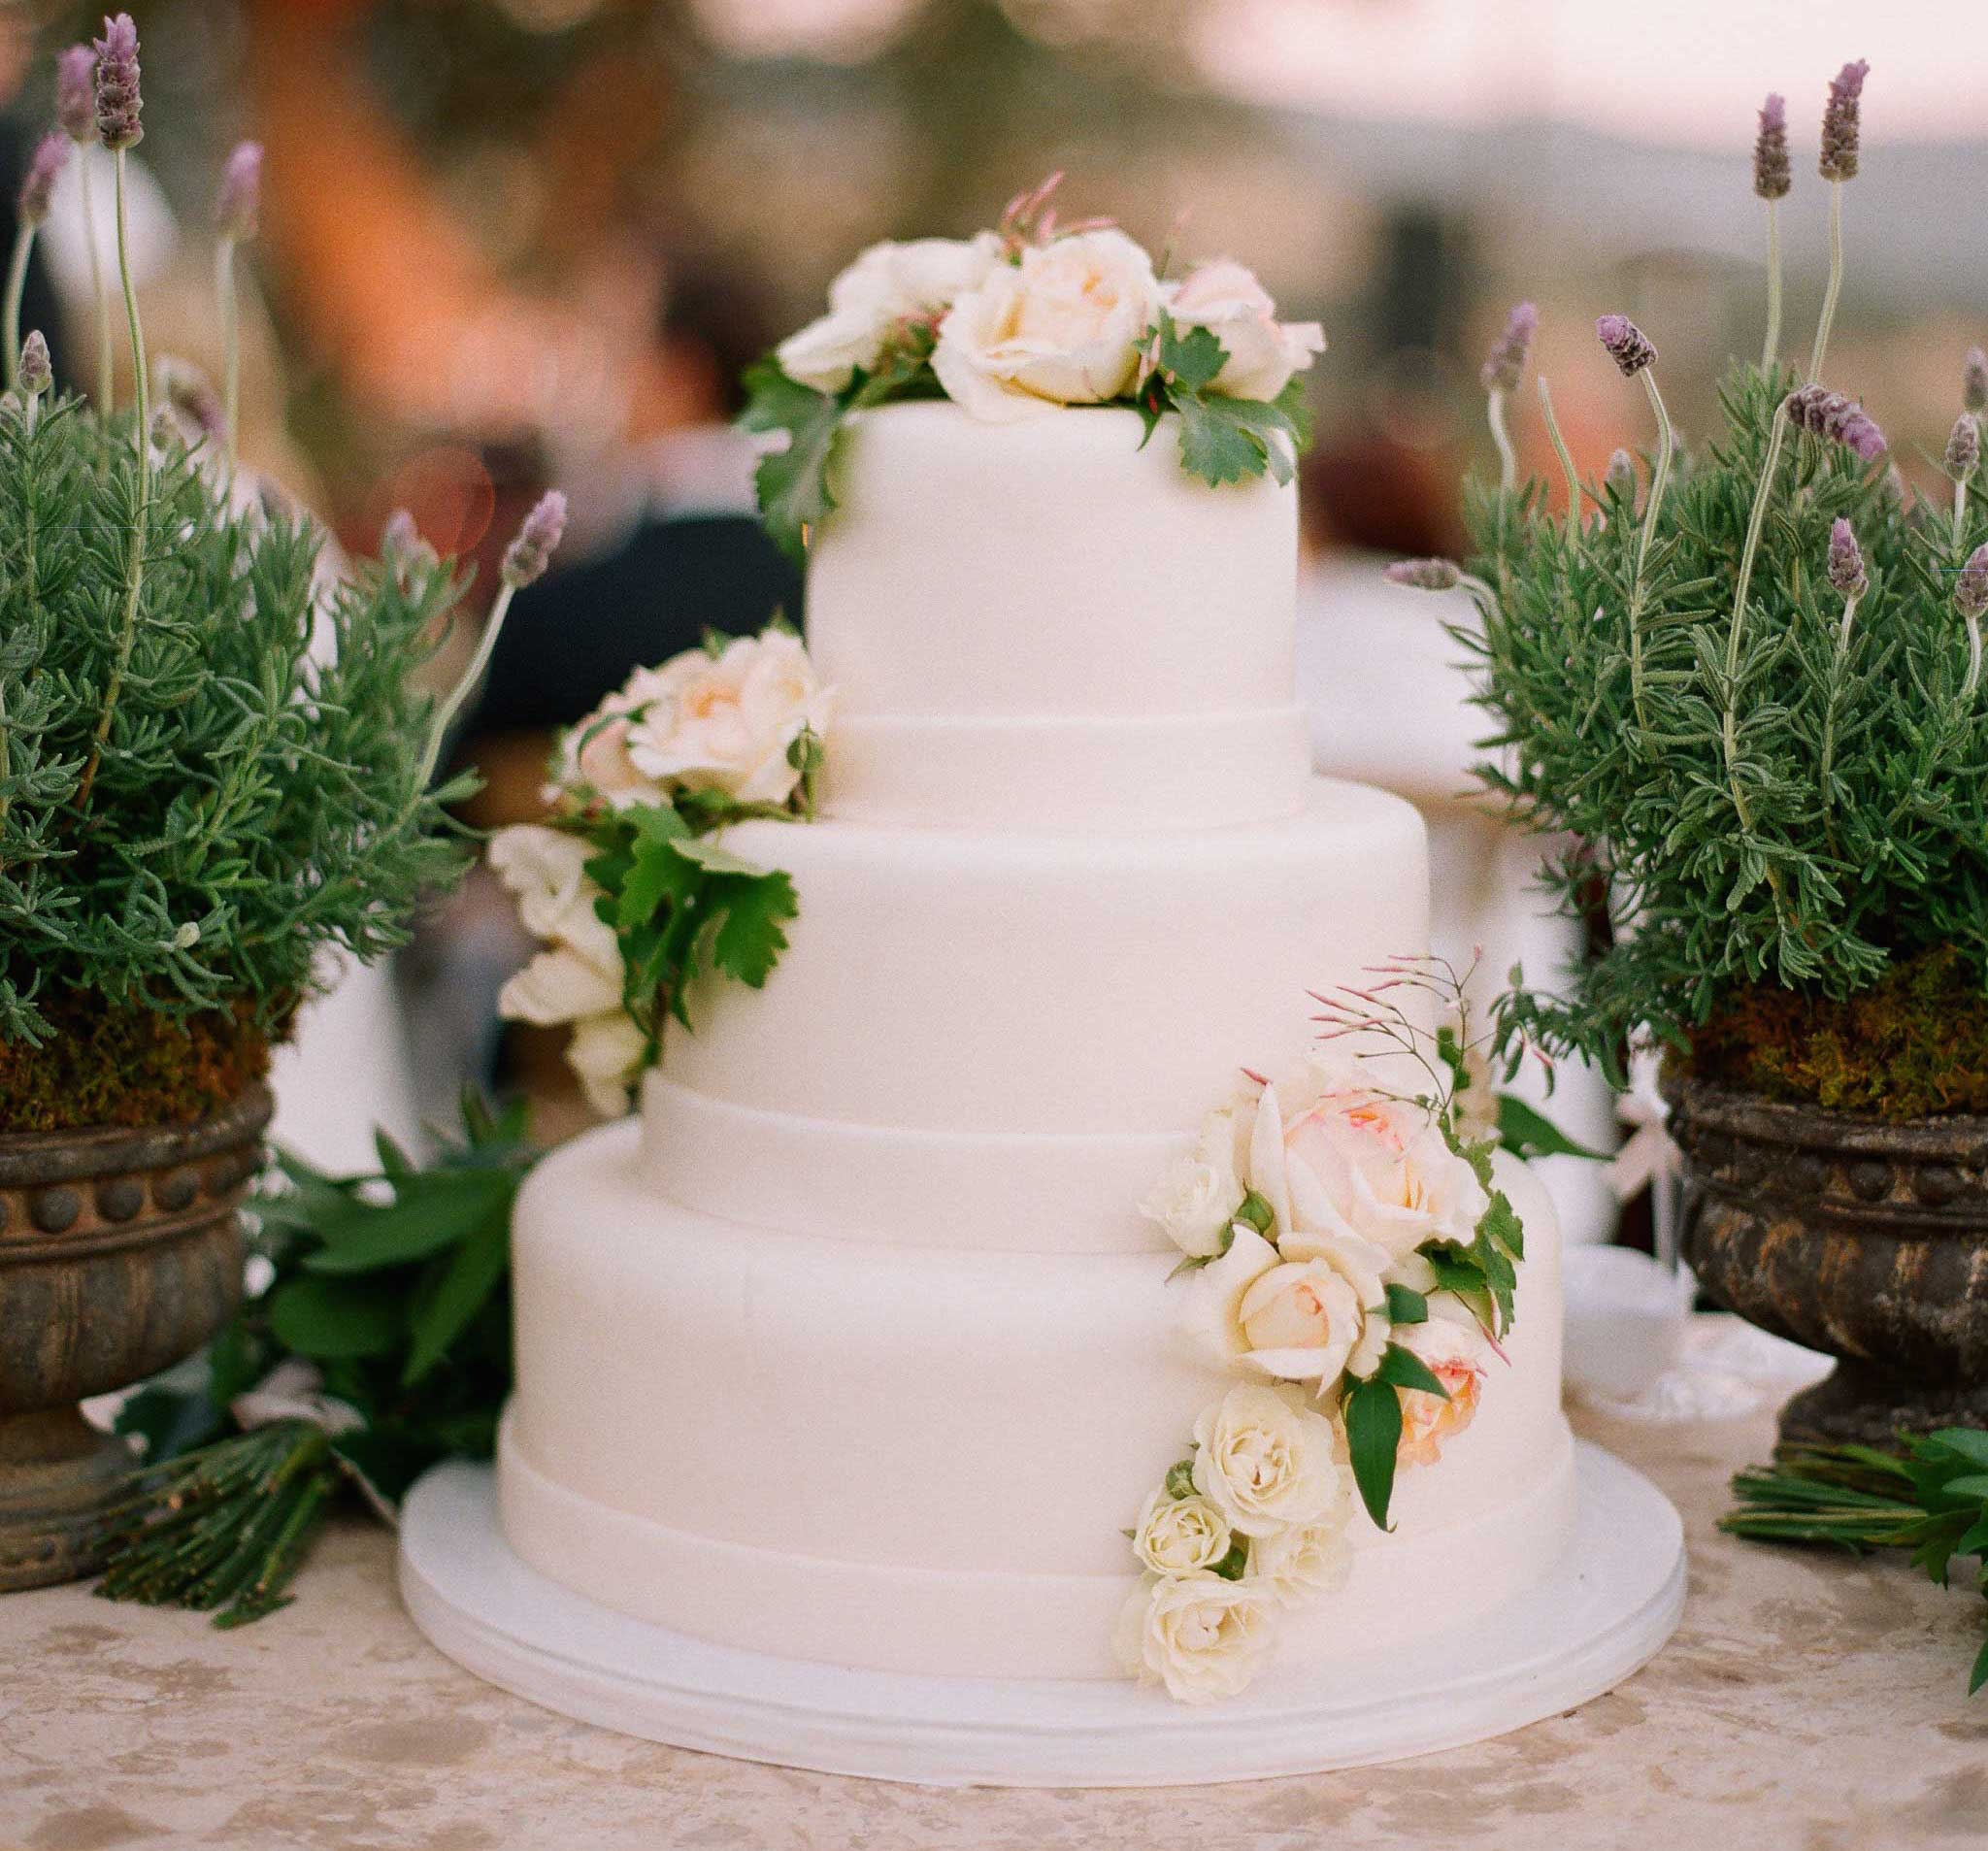 Simple white wedding cake Mark Paul Gosselaar